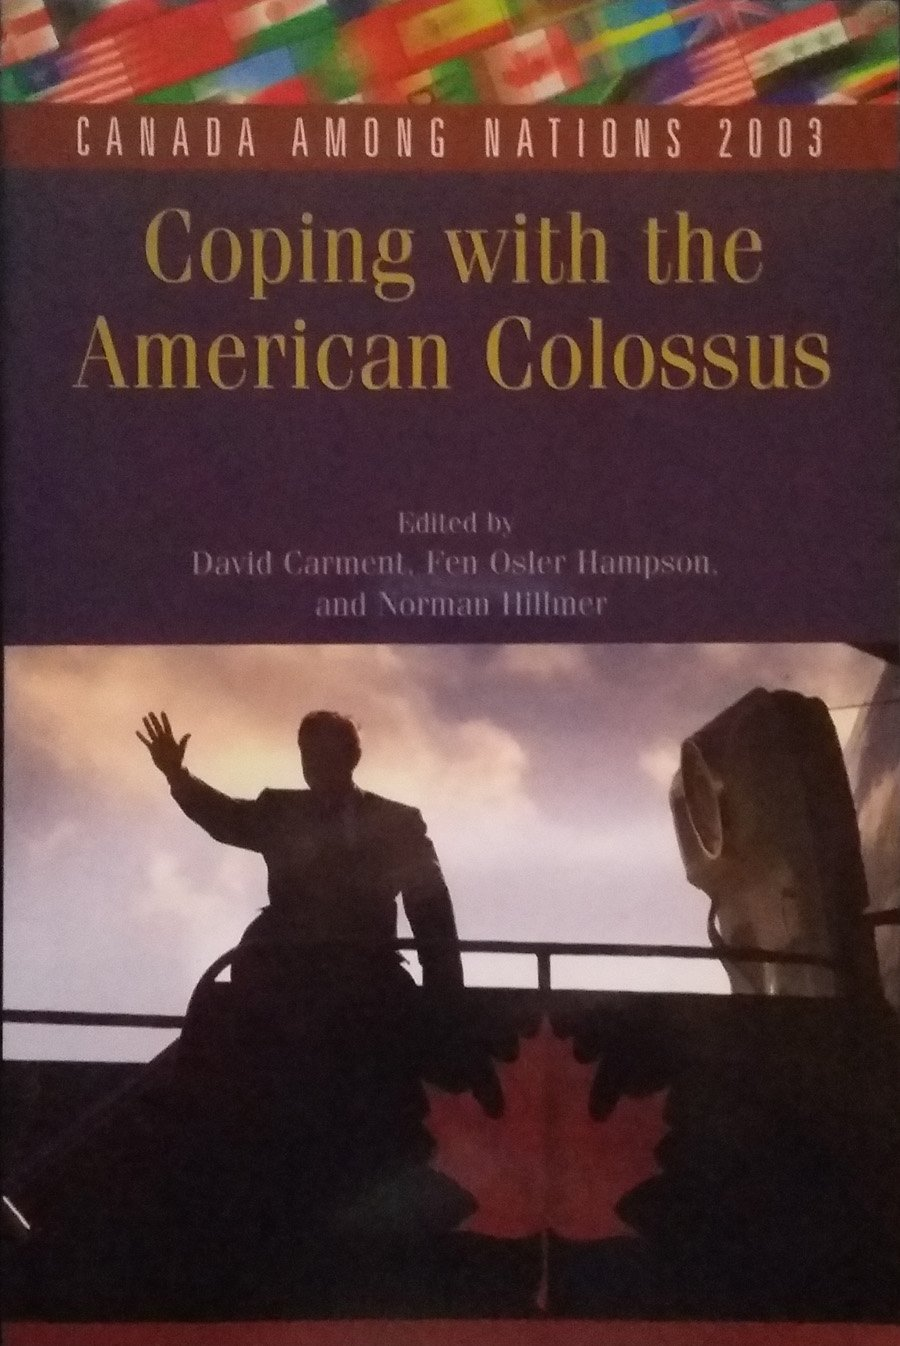 Read Online Canada among Nations 2003: Coping with the American Colossus pdf